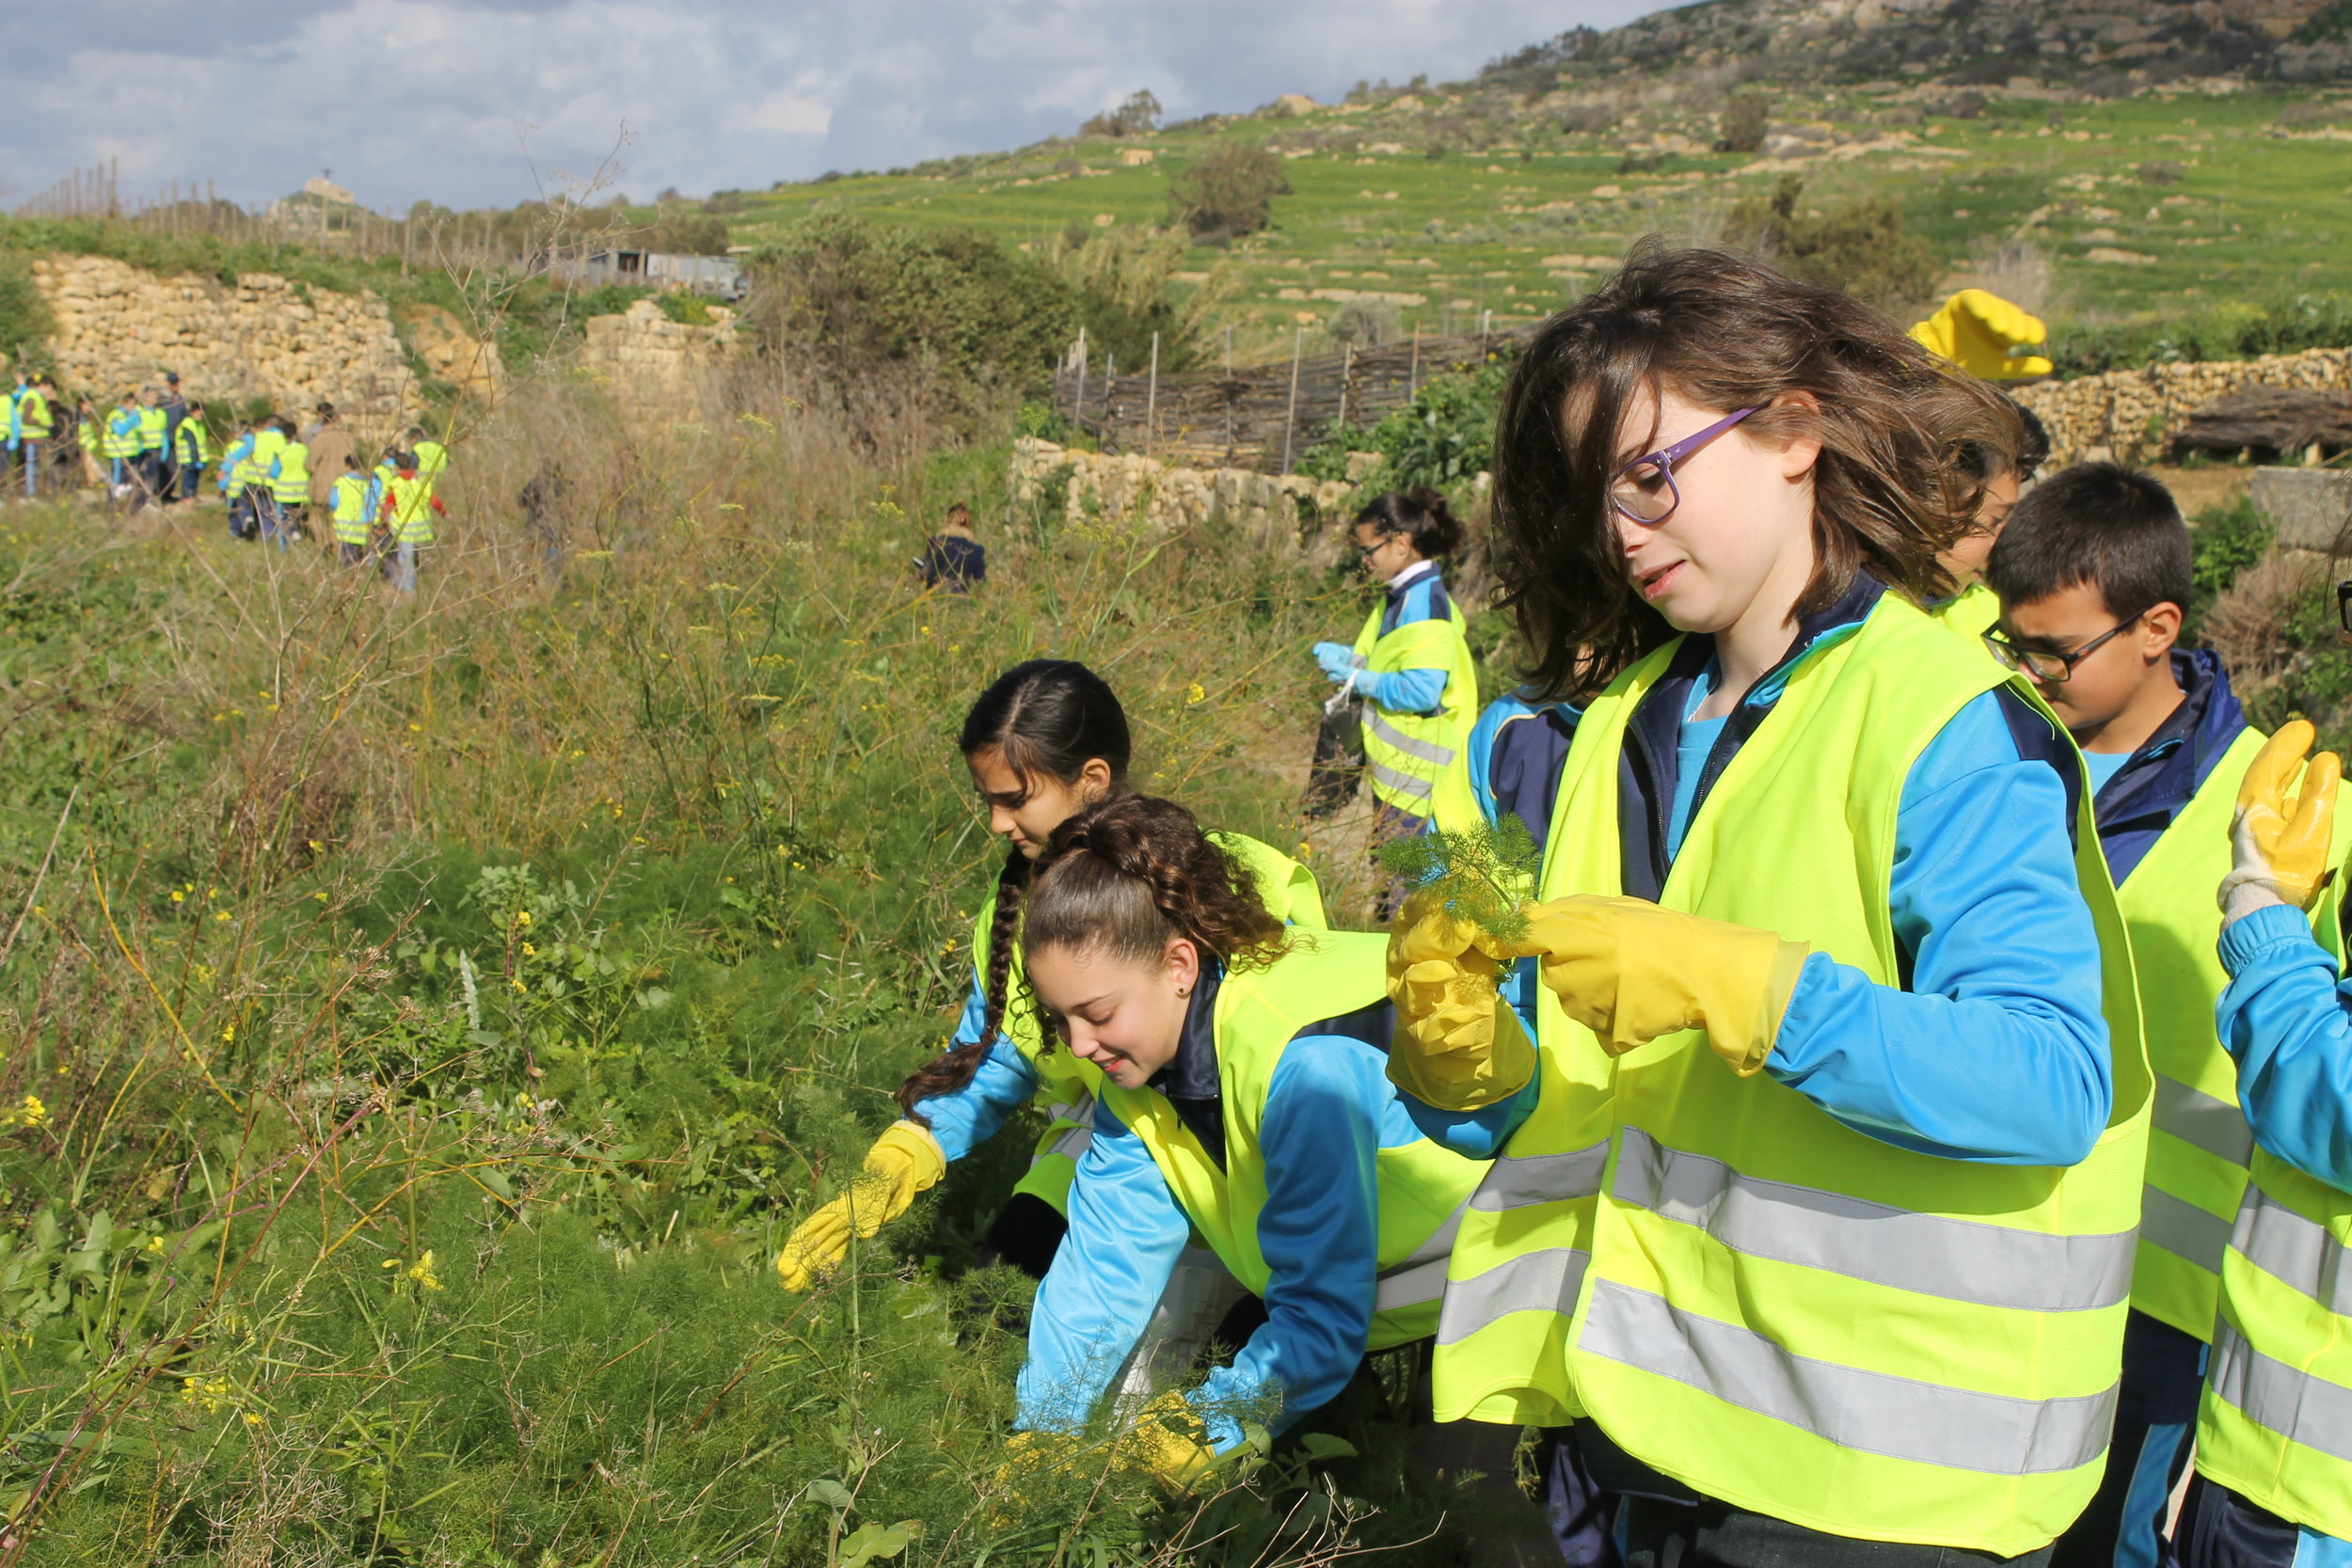 Students of the Gozo College collecting wild plants